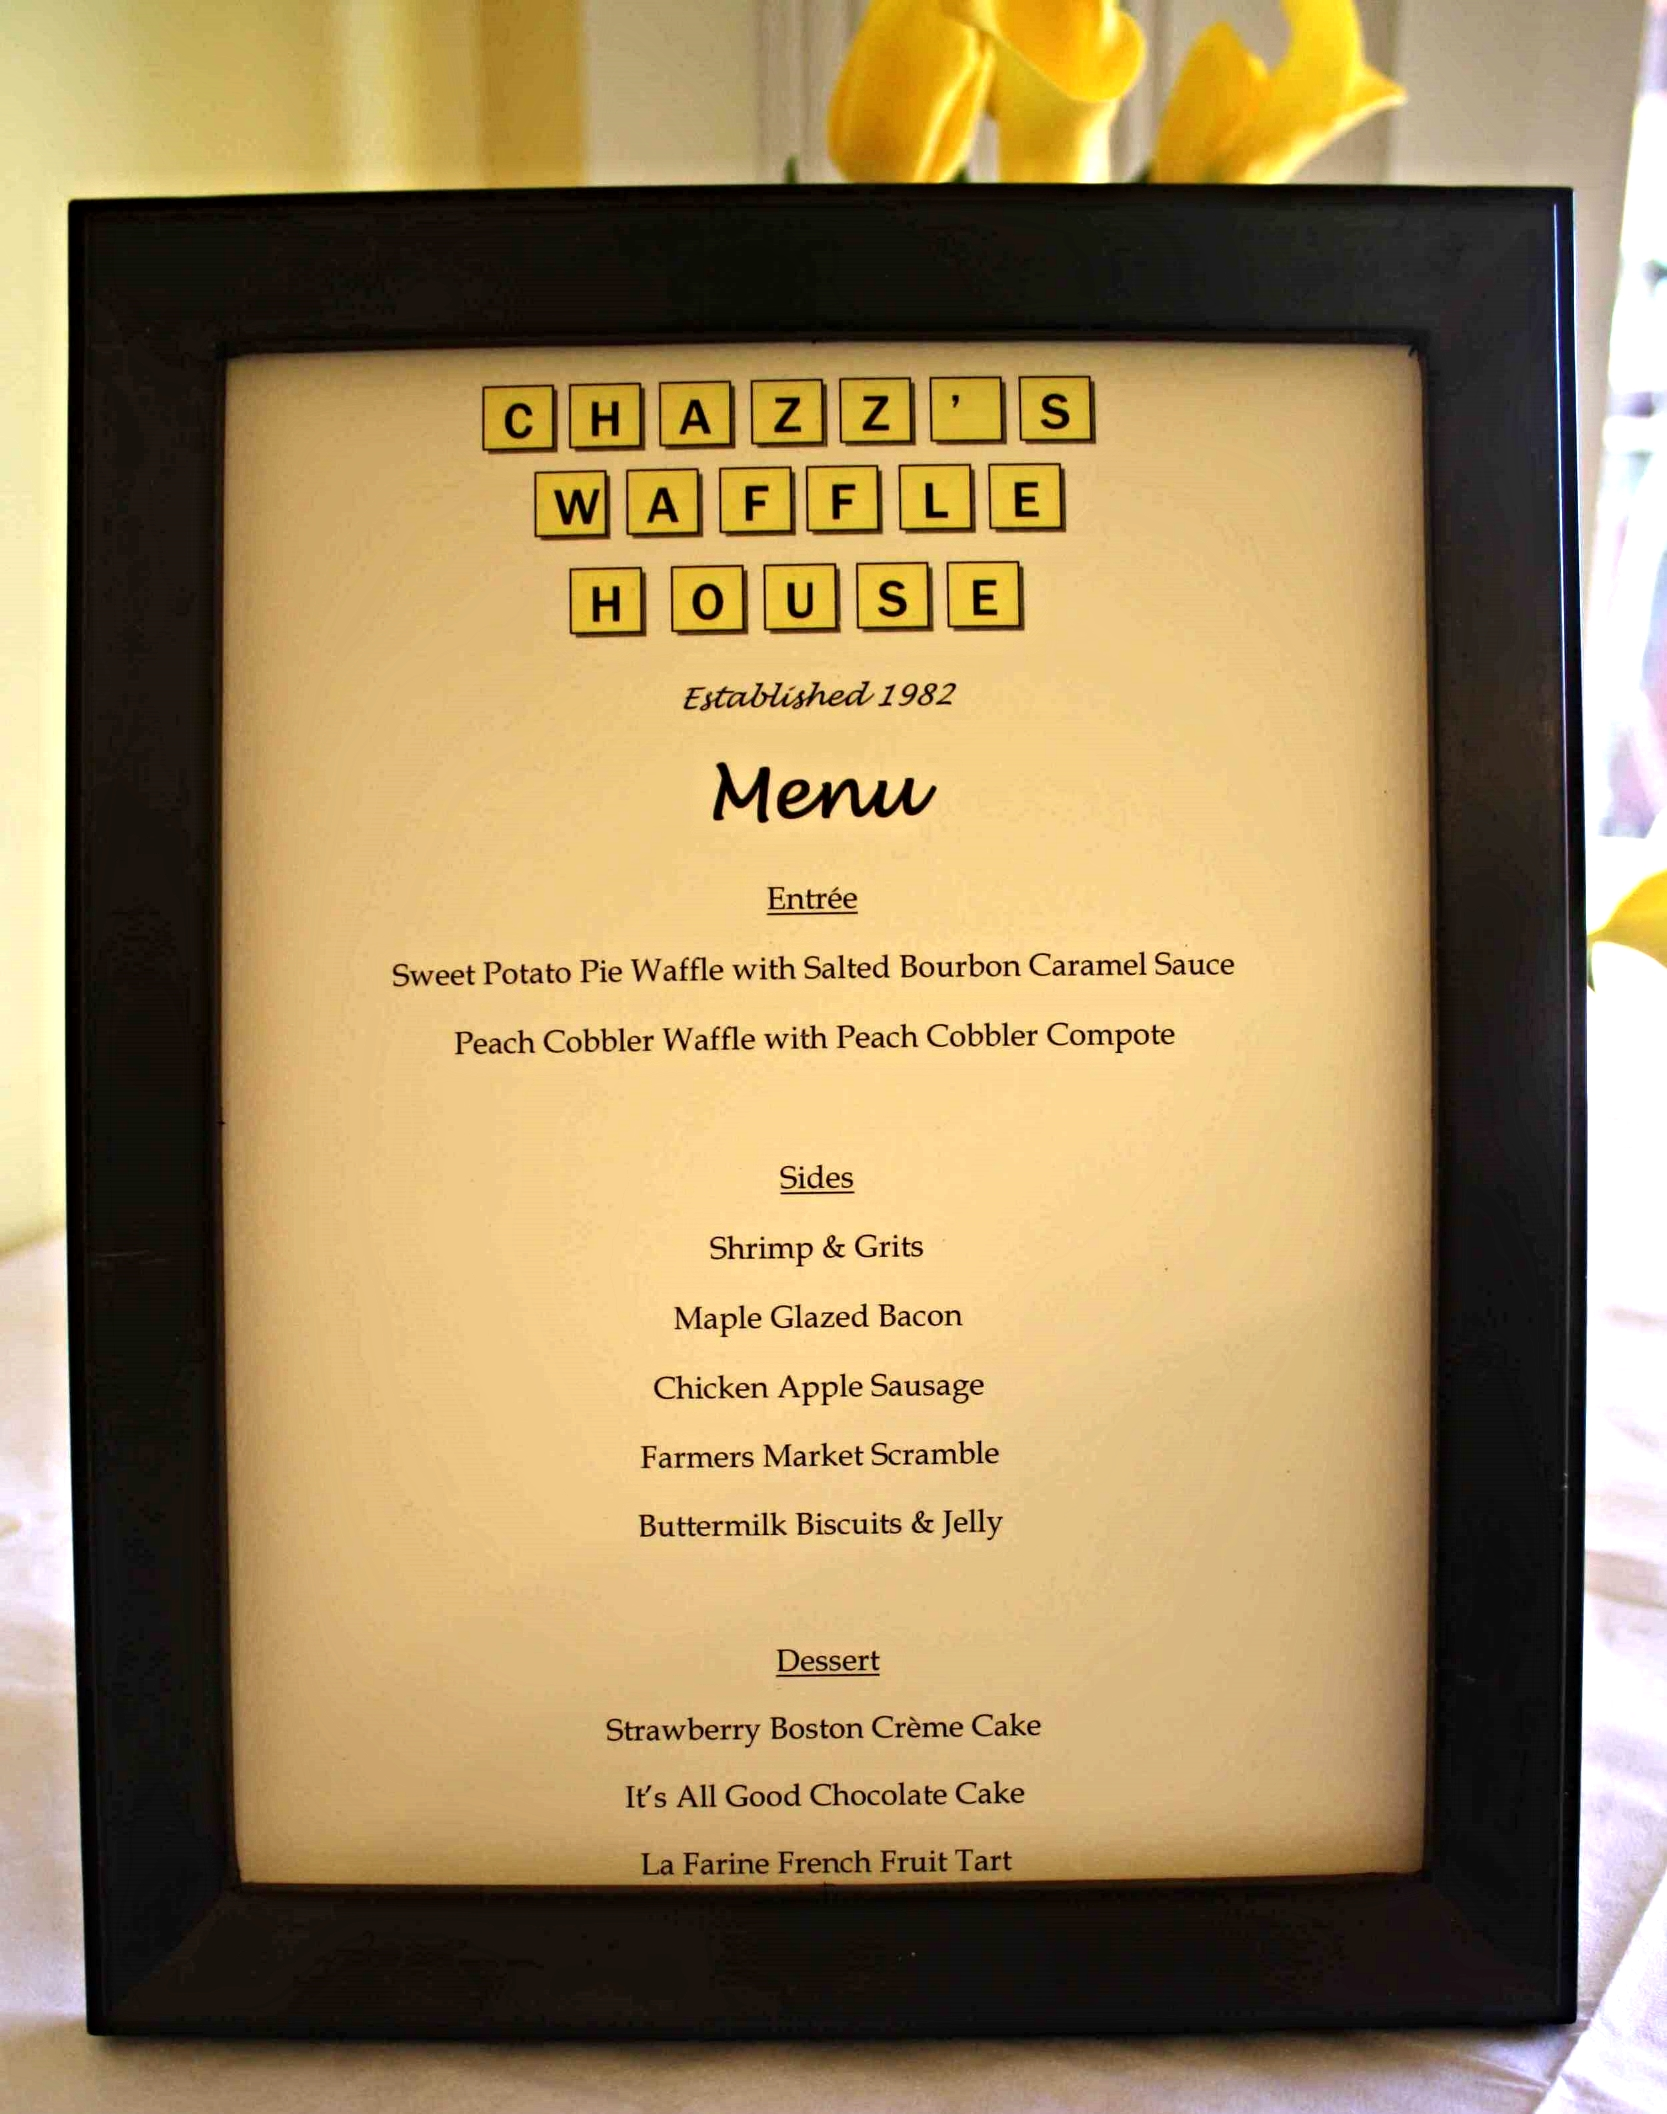 "img src=""httpwww.theparkwayevents.jpg"" alt=""San Francisco Bay Area Event Planner Outdoor Dinner Party Custom Menu"".jpg"